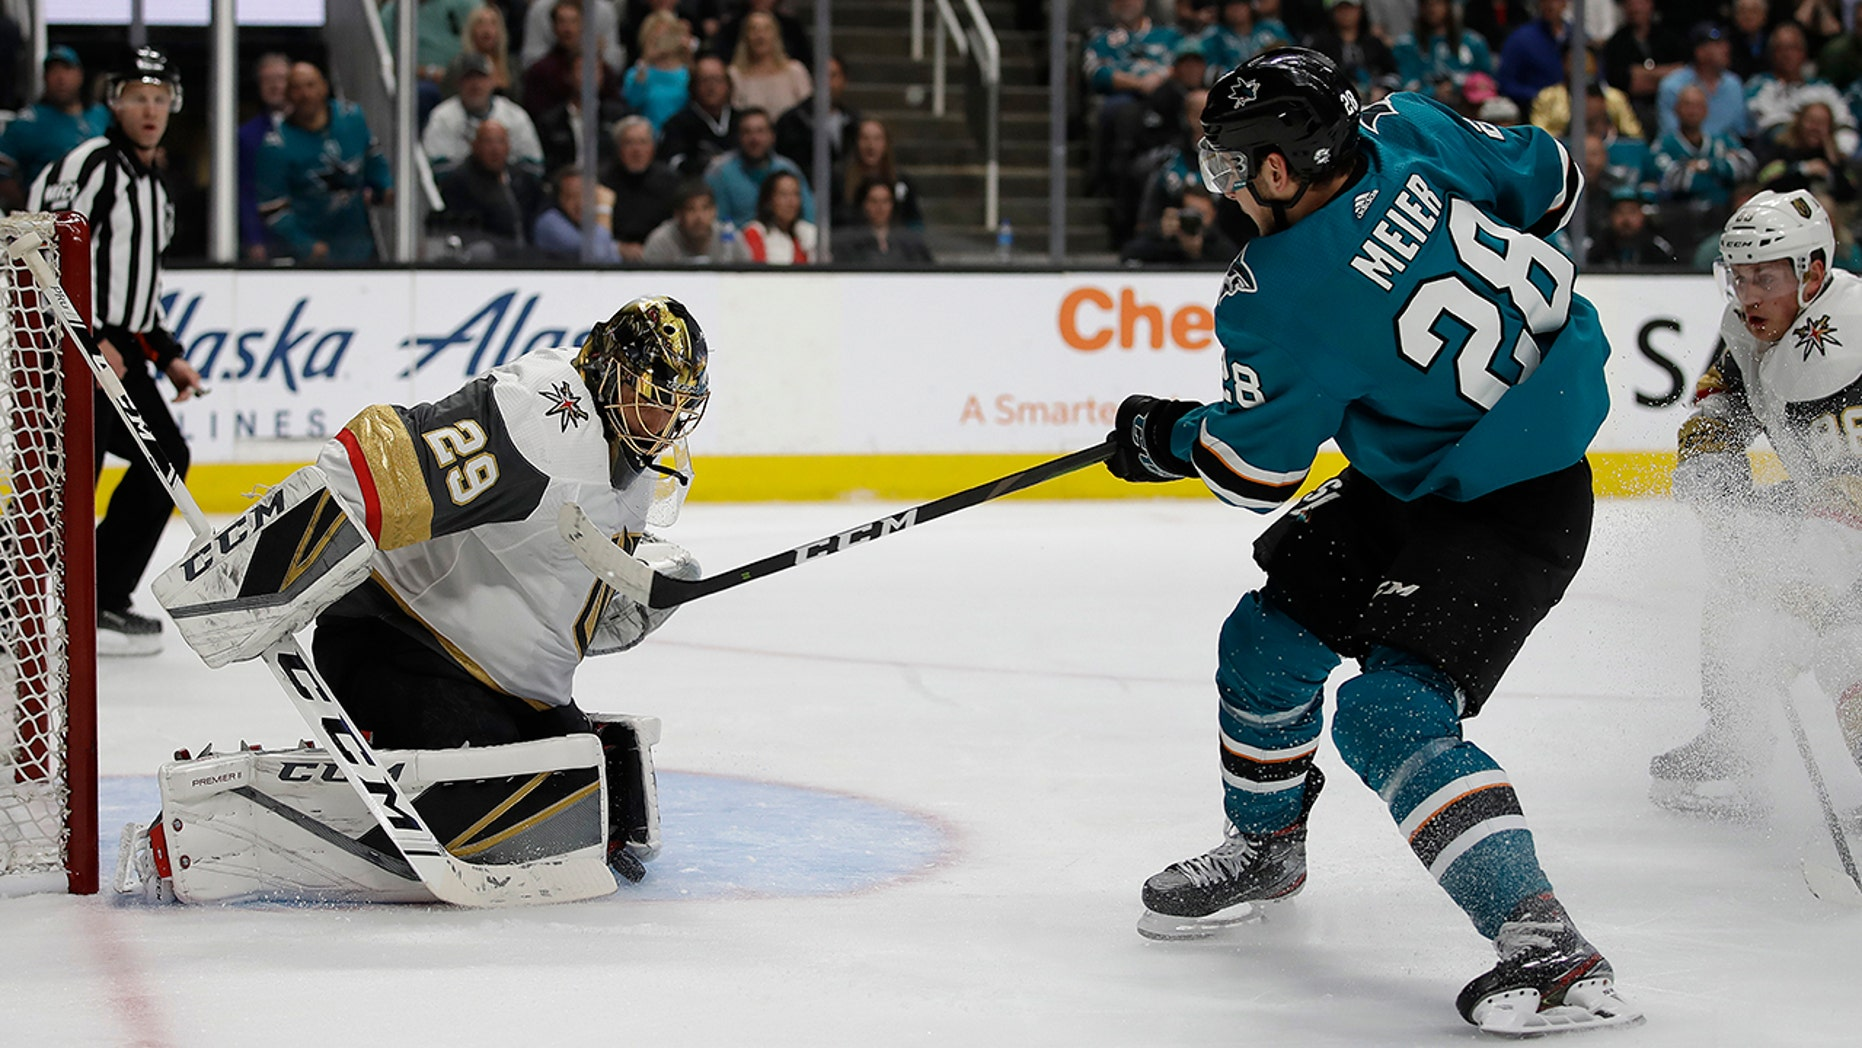 Vegas Golden Knights goalie Marc-Andre Fleury, left, blocks a shot from San Jose Sharks' Timo Meier (28) during the first period of Game 5 of an NHL hockey first-round playoff series Thursday, April 18, 2019, in San Jose, Calif. (AP Photo/Ben Margot)